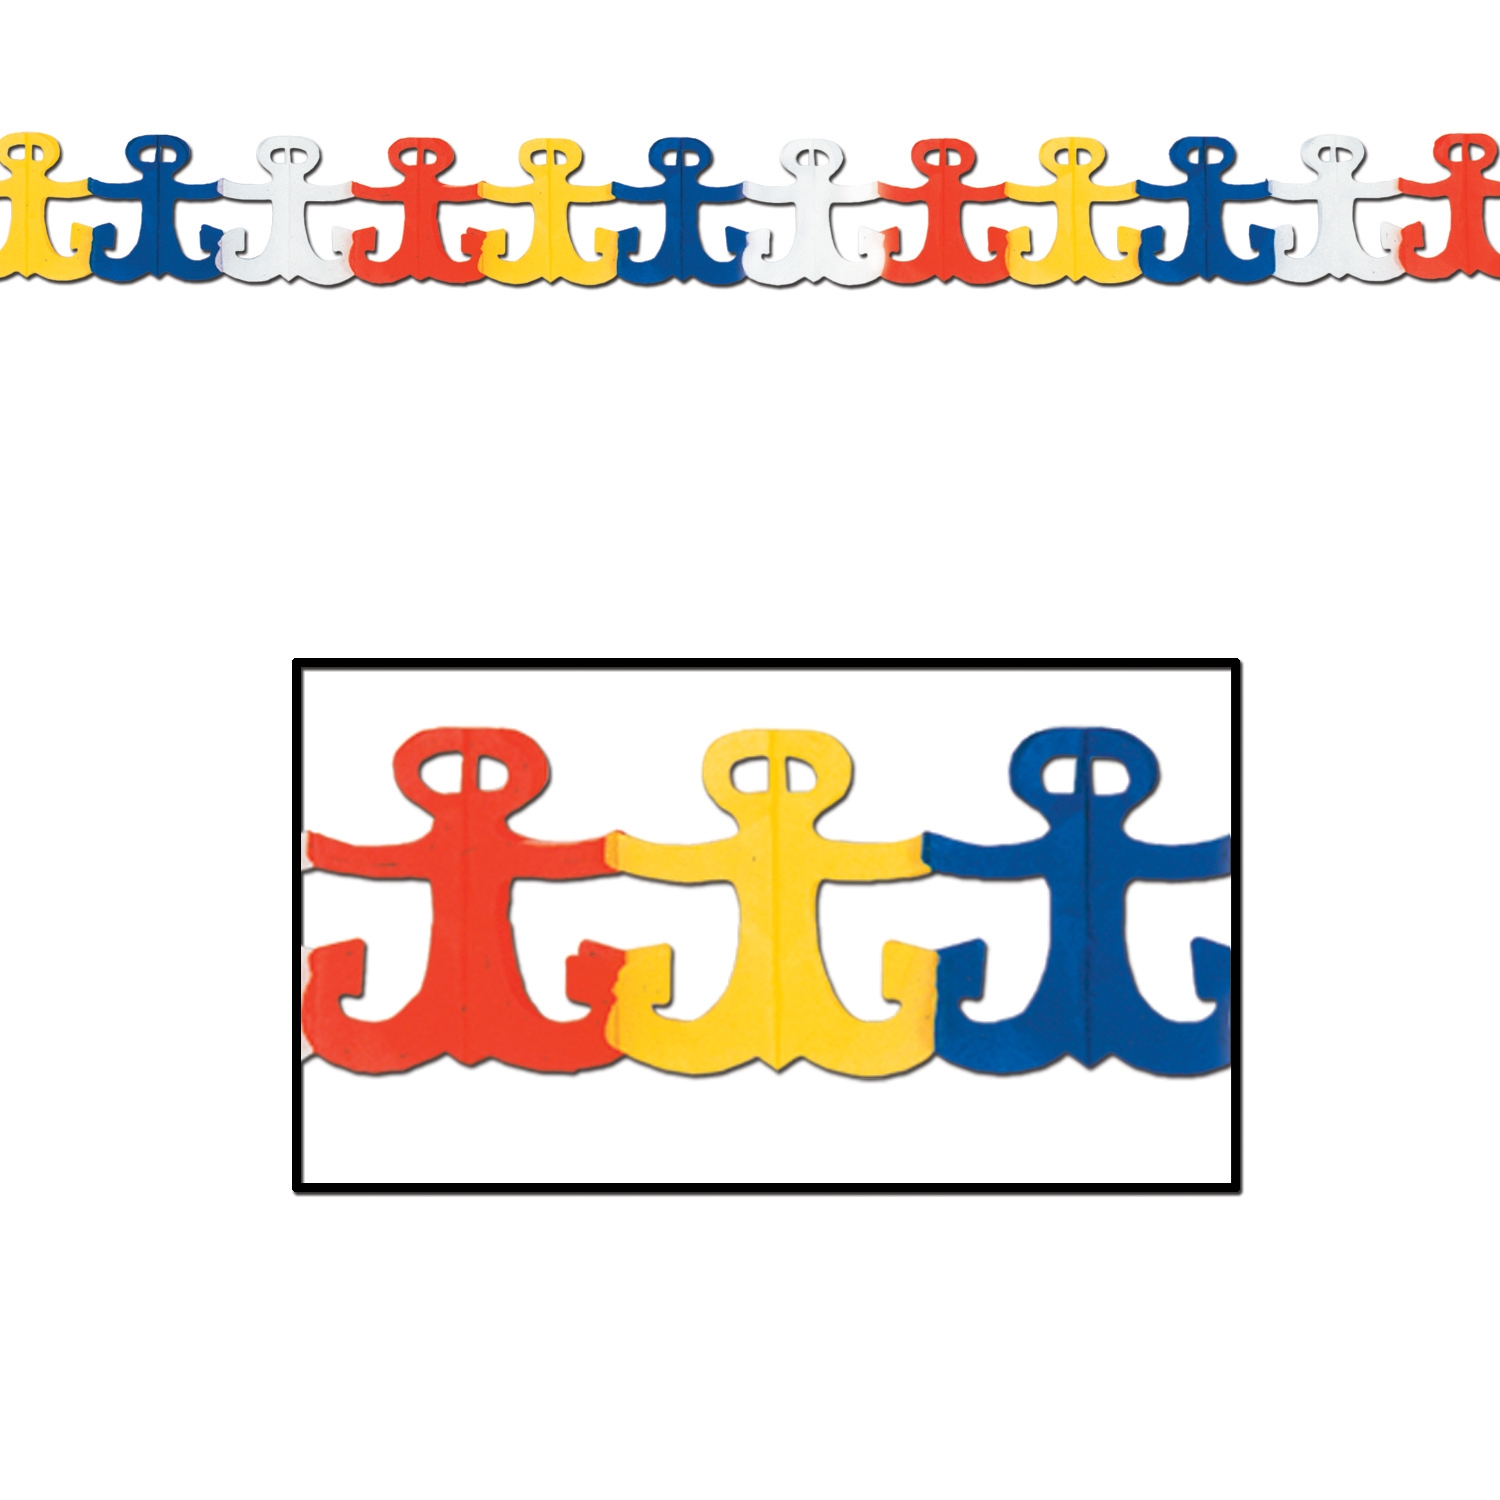 Anchor Garland (Pack of 12) Anchor, garland, nautical, luau, party, tissue, ocean, seas